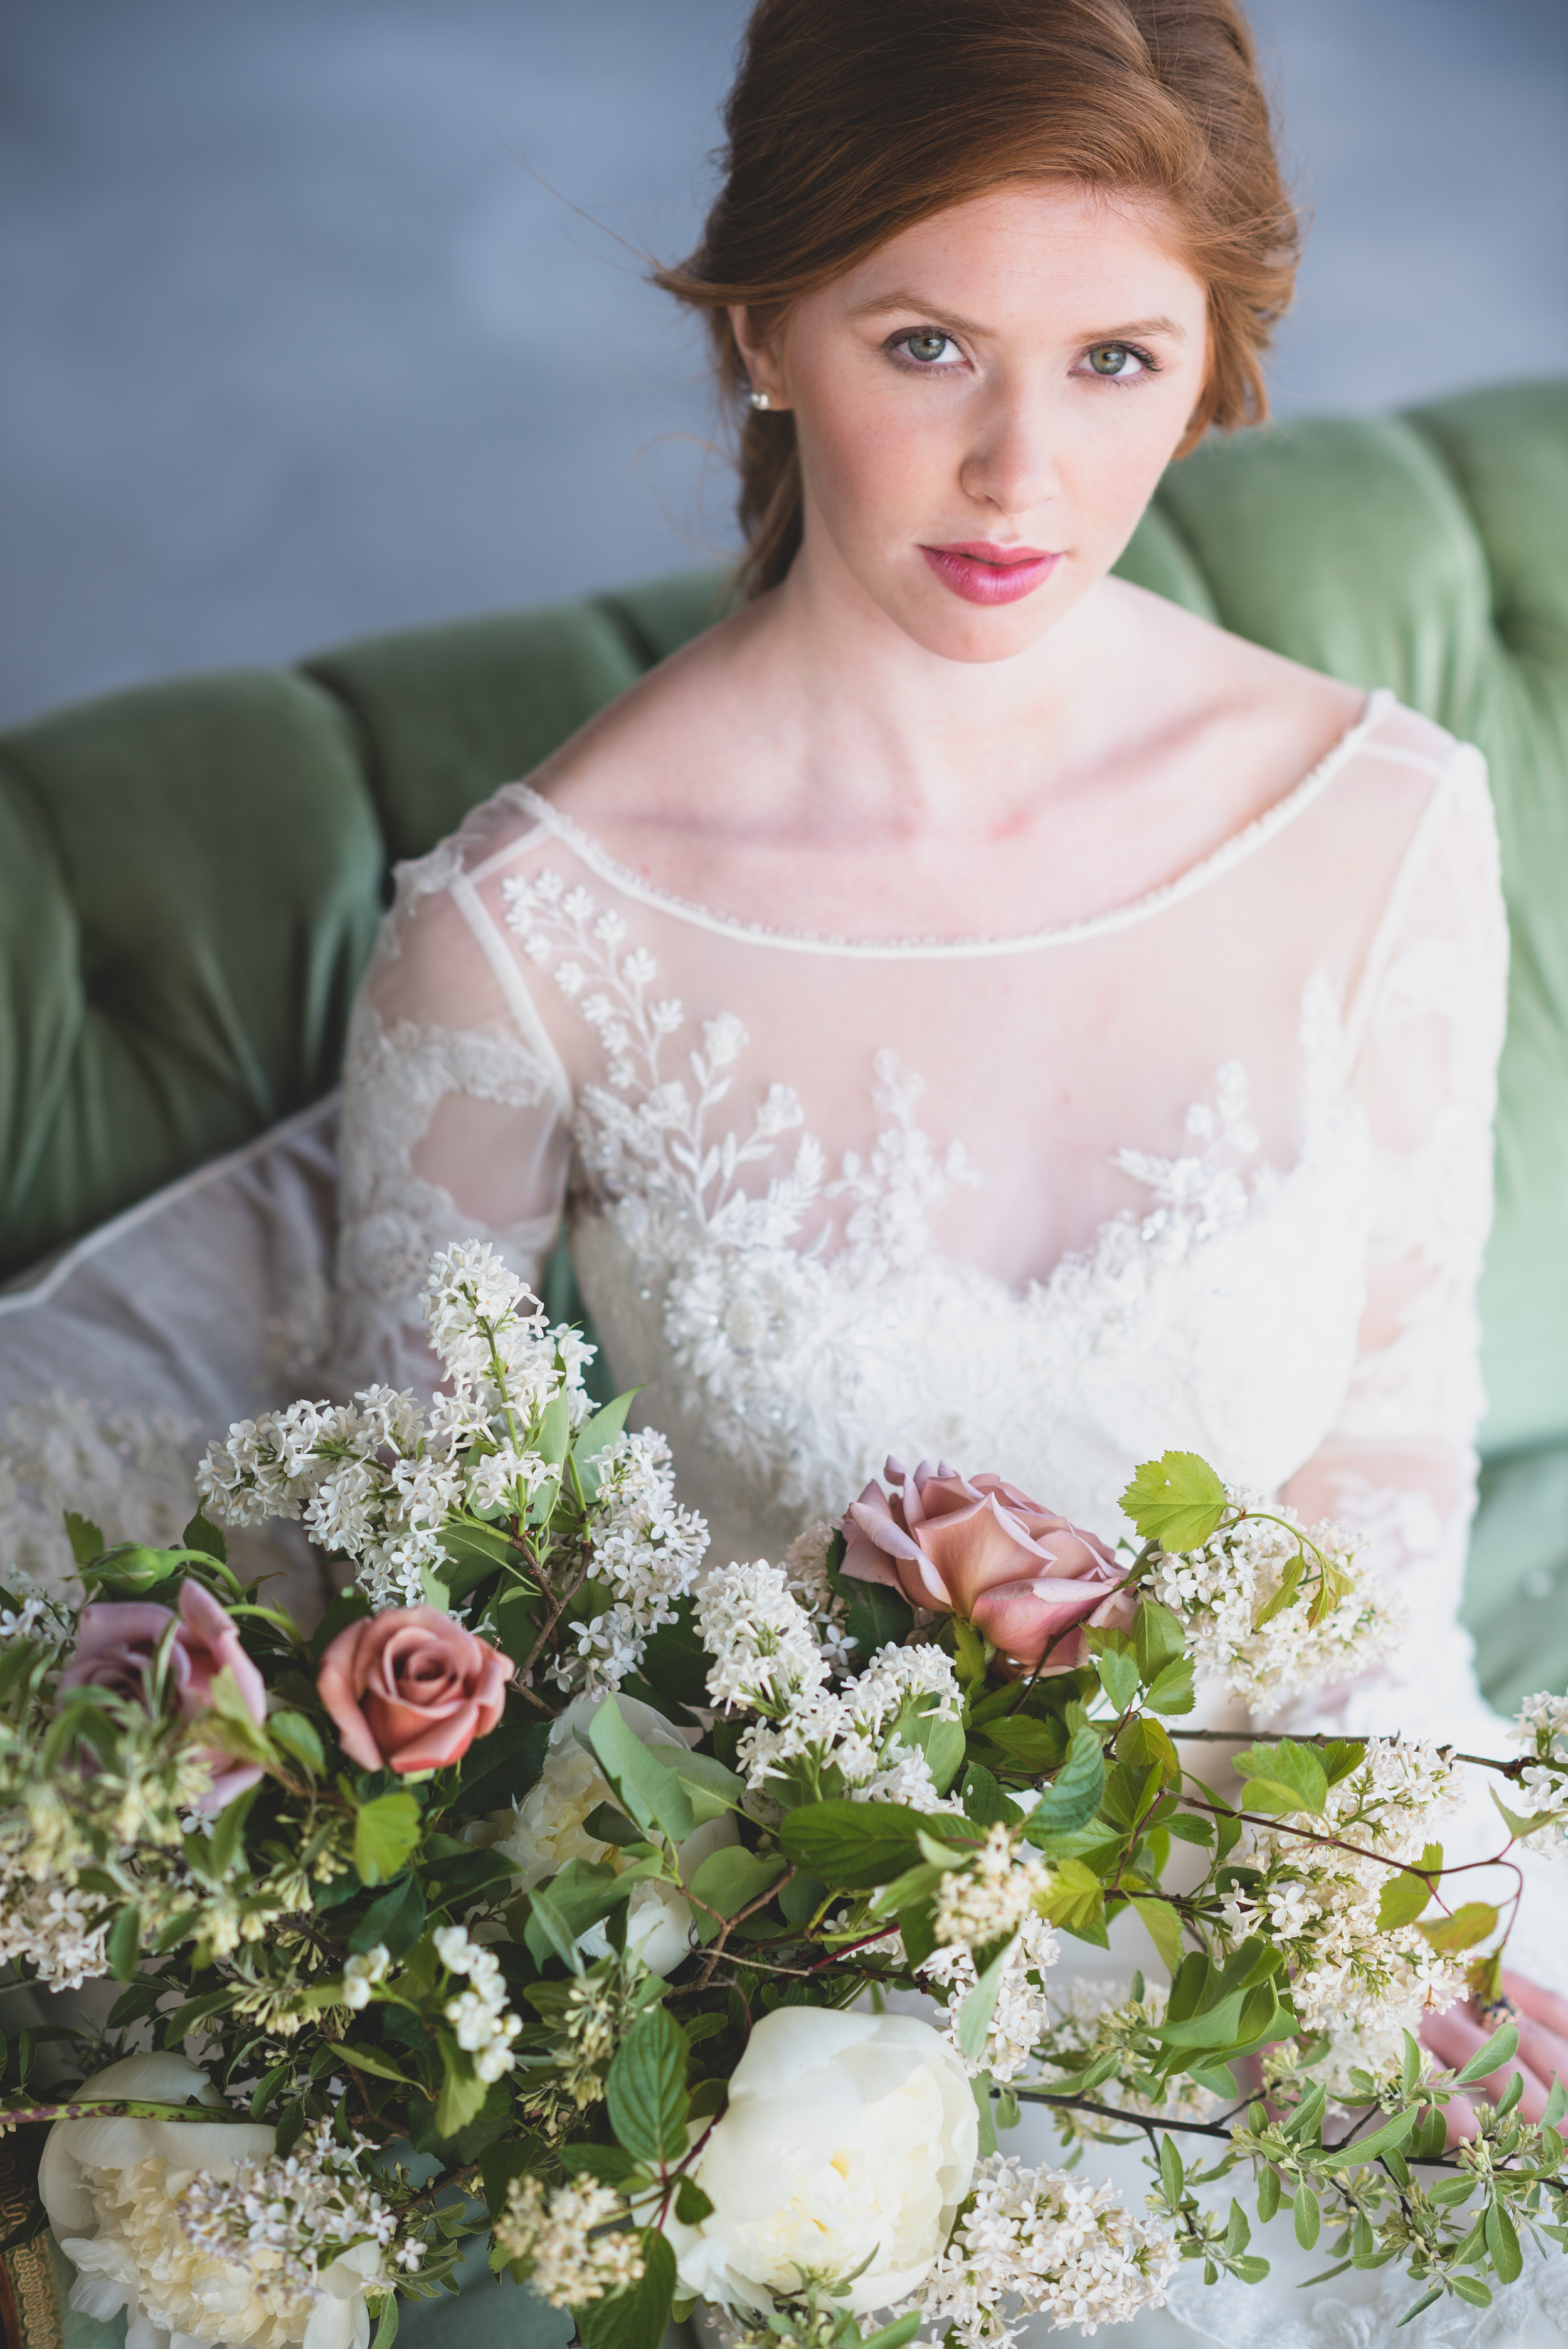 Devon C Photography . Jayne West Photography . Model Meaghan Dietrich of Cameo Models & Sherrida Models . Brantview Events Pavilion . Florals & Styling La Petite Fleur . Rentals & Styling Warehouse 84 . Hair by Teased Bridal . Gown Second Dance Bridal